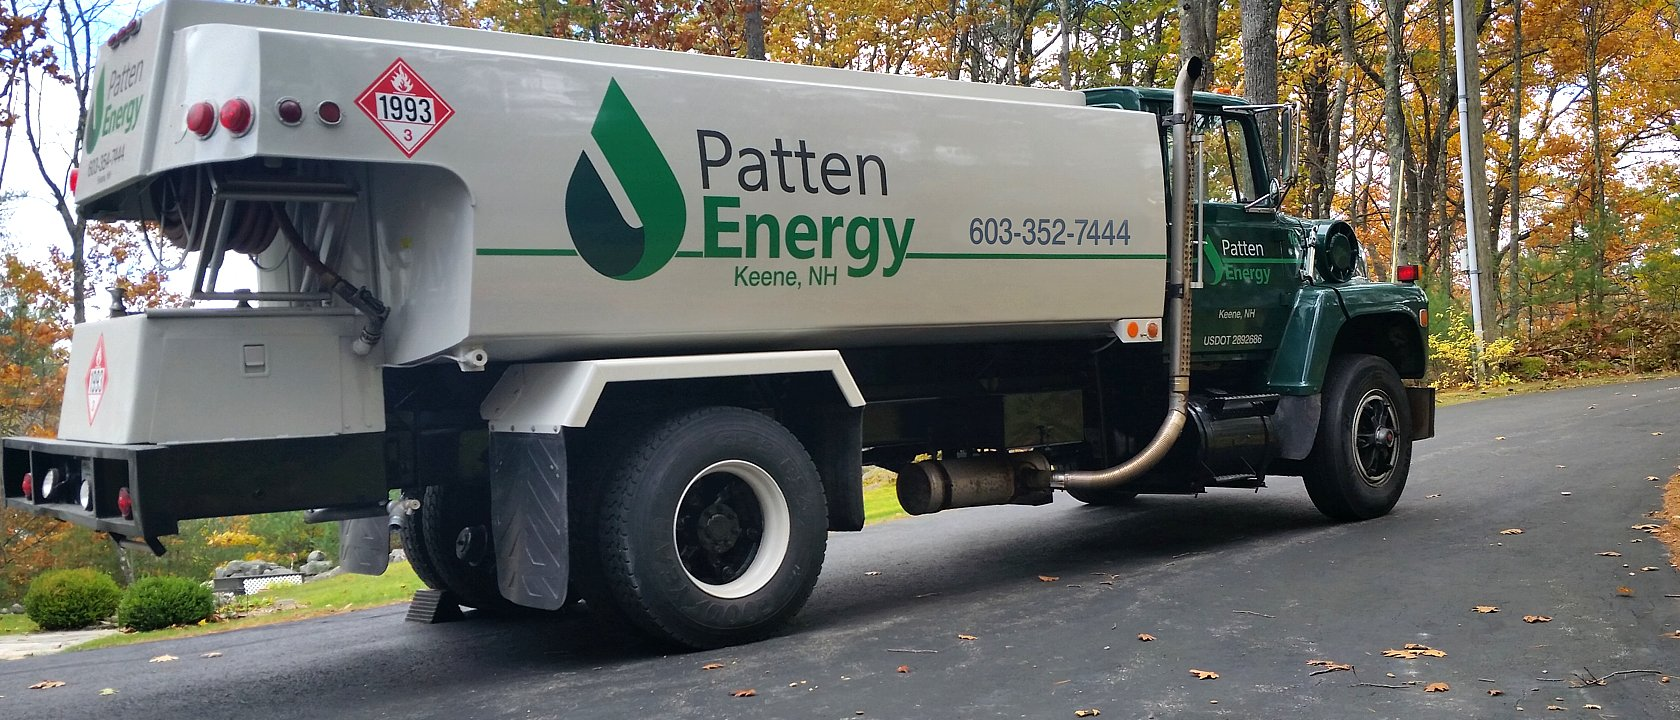 About Patten Energy